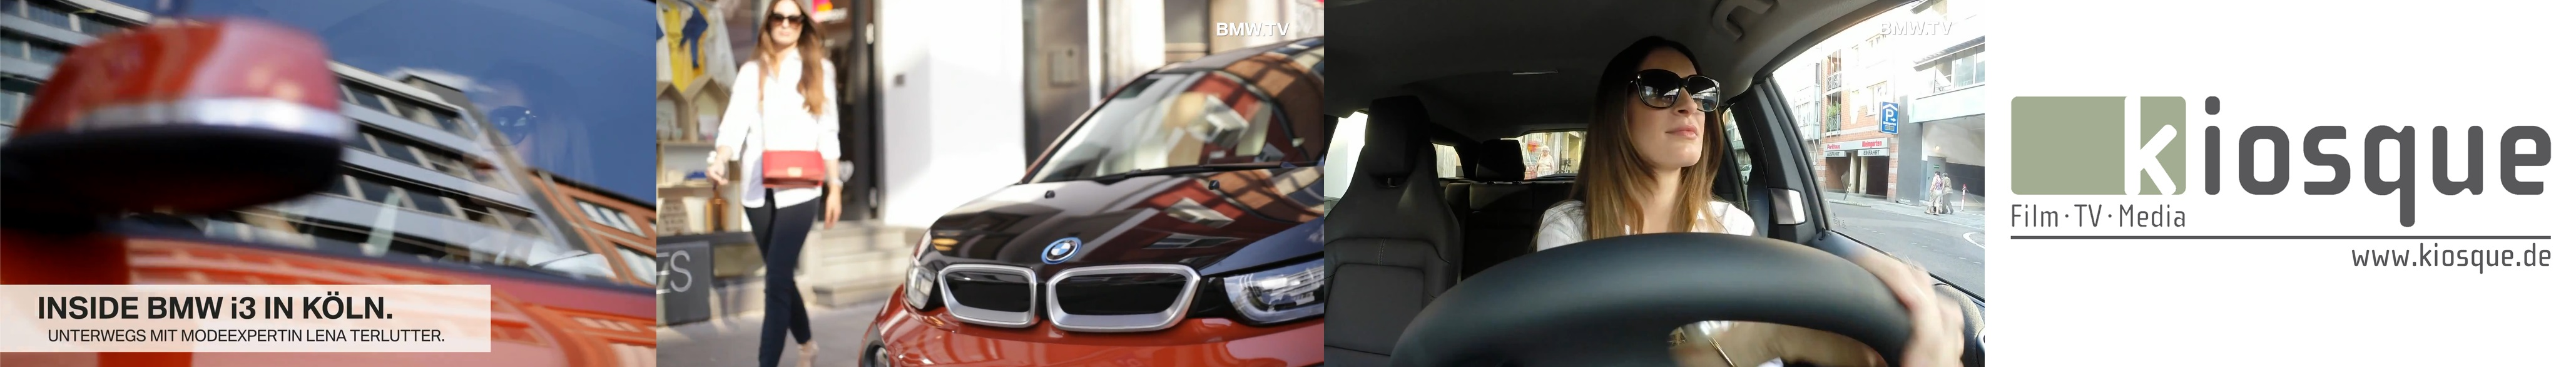 tl_files/kiosque_de/img/BMWi3 jpg.jpg